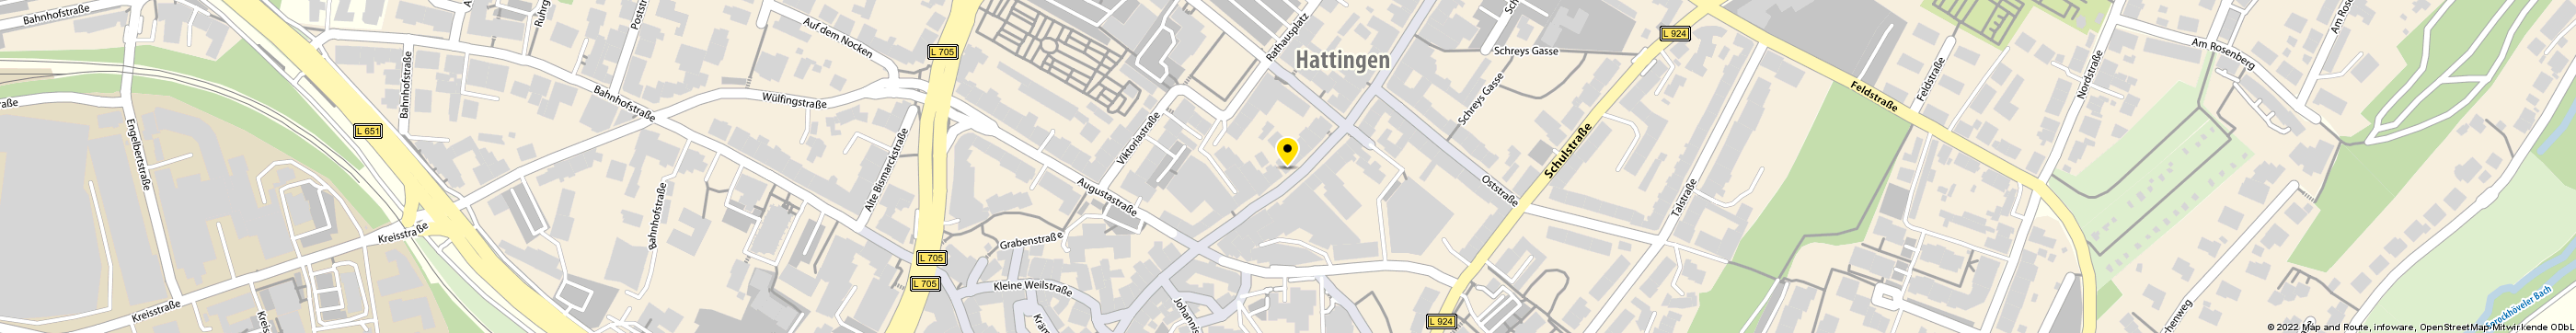 TARGOBANK AG & Co KGaA in Hattingen Karte